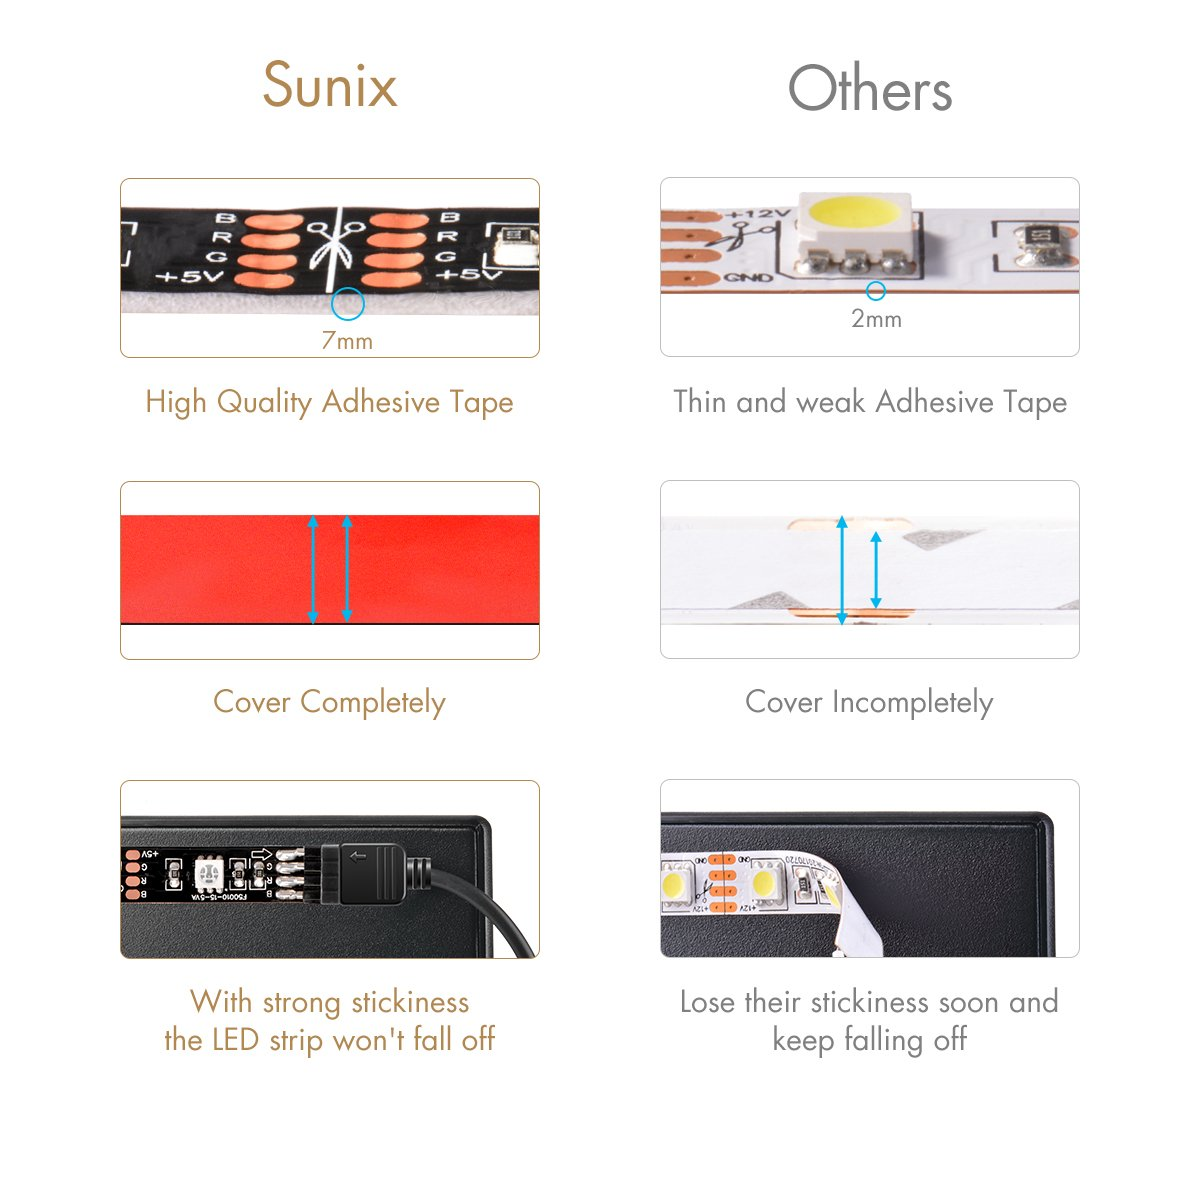 LED Strip Lights, Sunix 6.6ft RGB Bias Lighting for 40-60 inch HDTV,USB LED TV Backlight Kit with Remote - 20 Colors and 4 Dynamic Mode (4pcs x 50cm LED Strips) [Energy Class A+] by Sunix (Image #3)